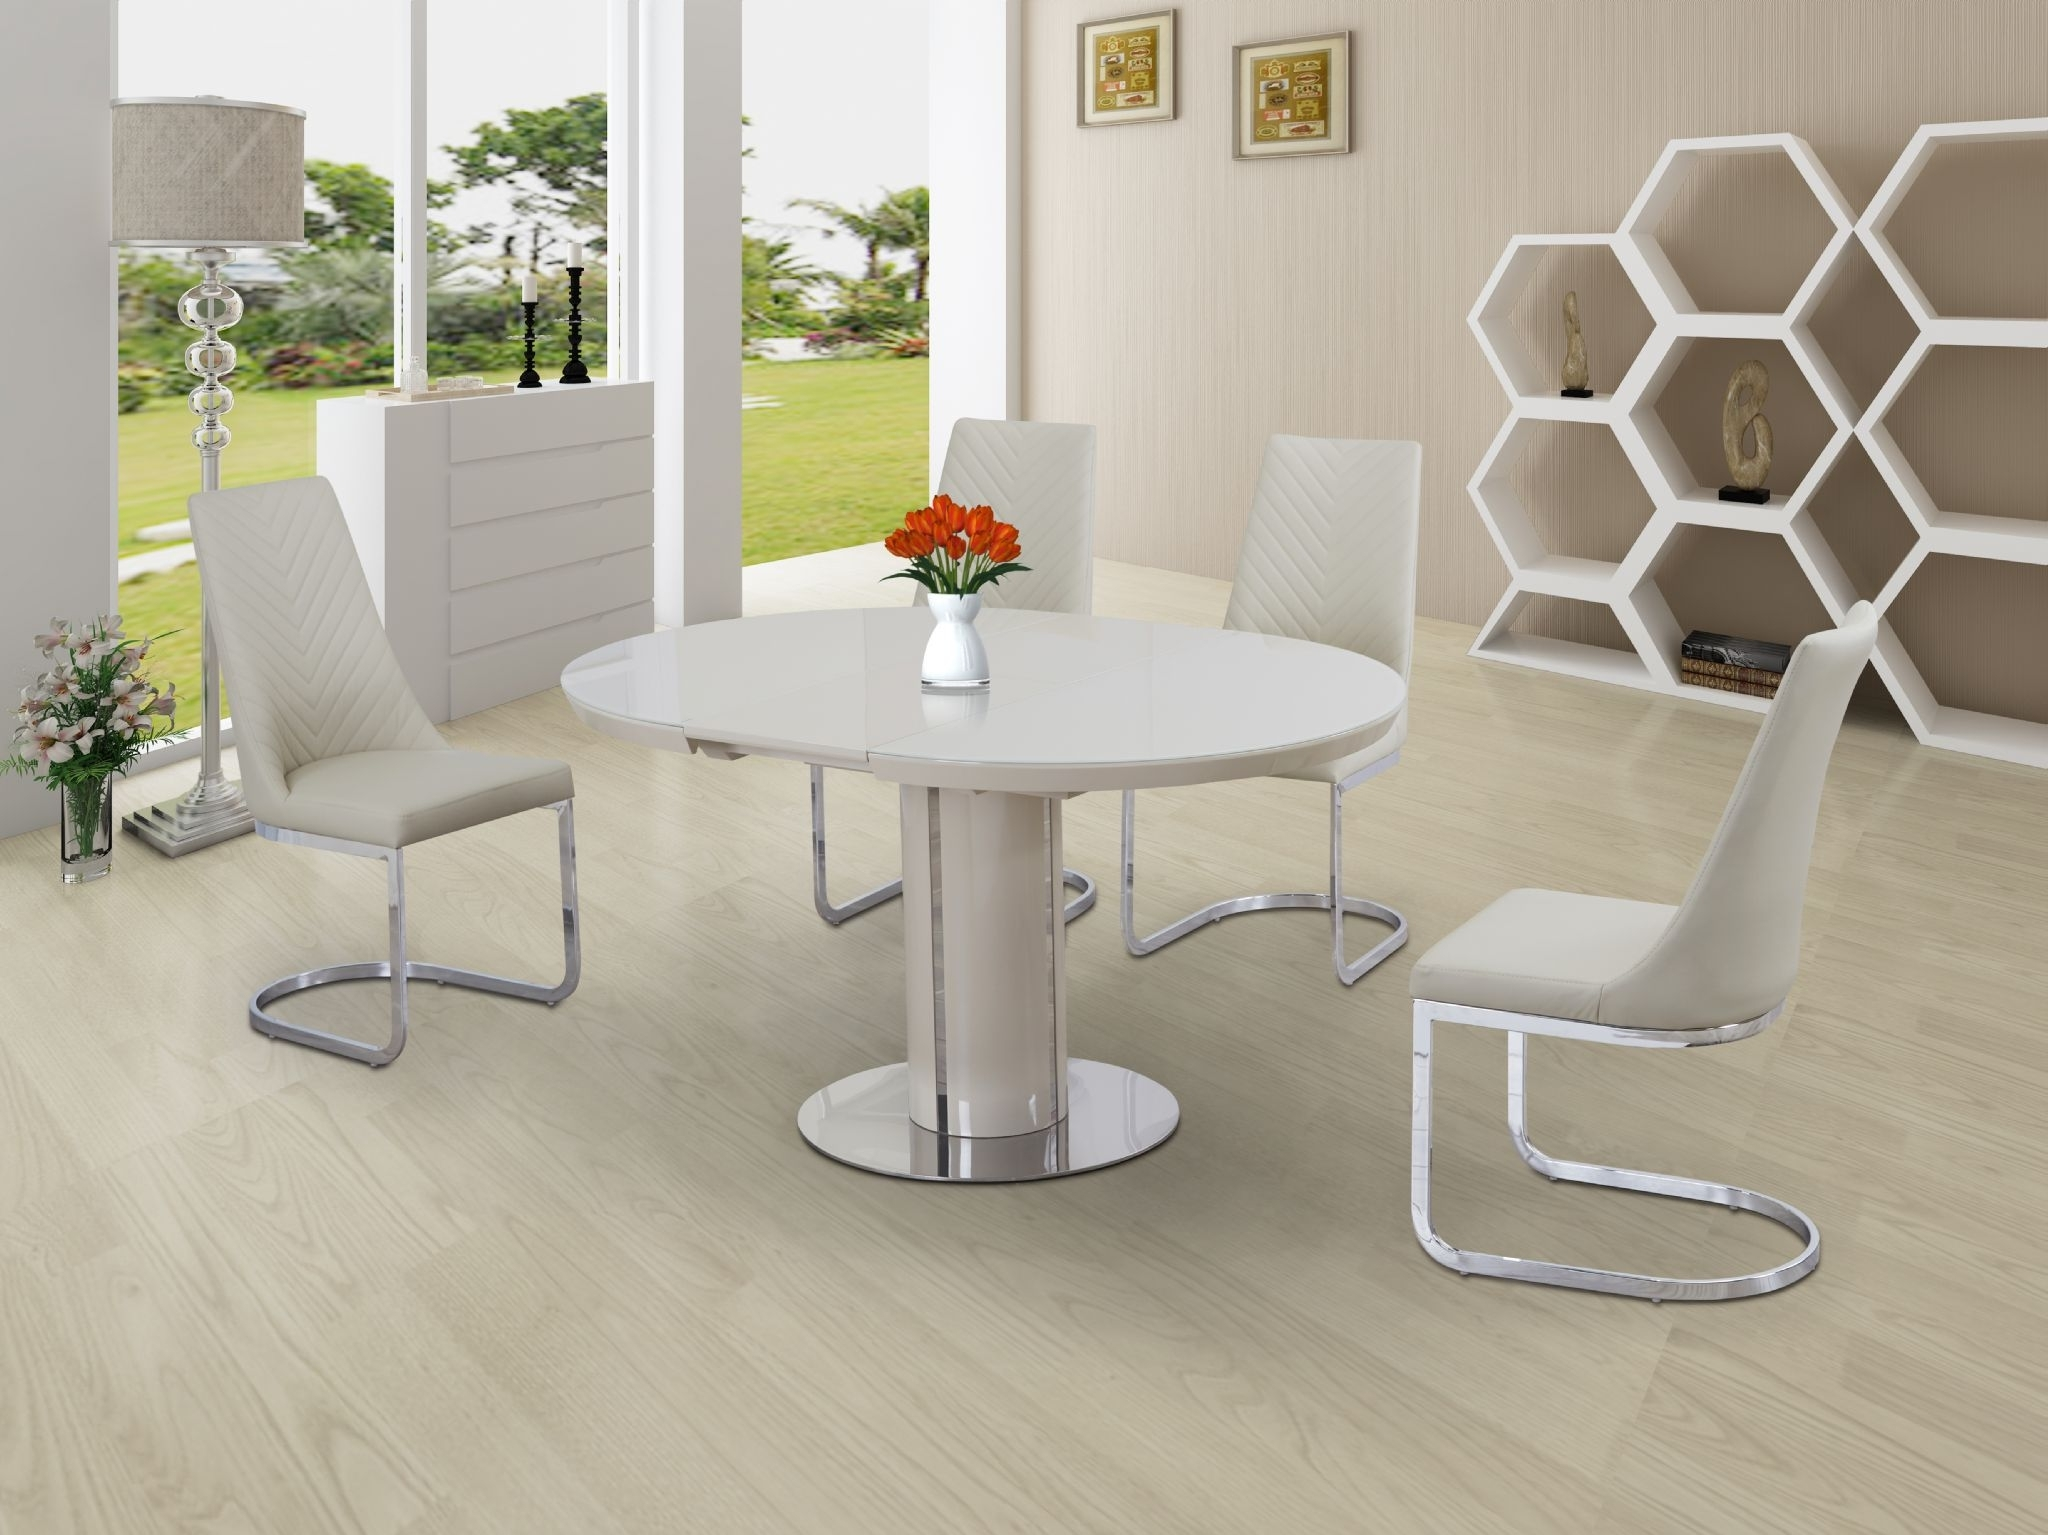 Best And Newest Small Extending Dining Tables Pertaining To Buy Cream Small Round Extendable Dining Table Today (View 10 of 25)